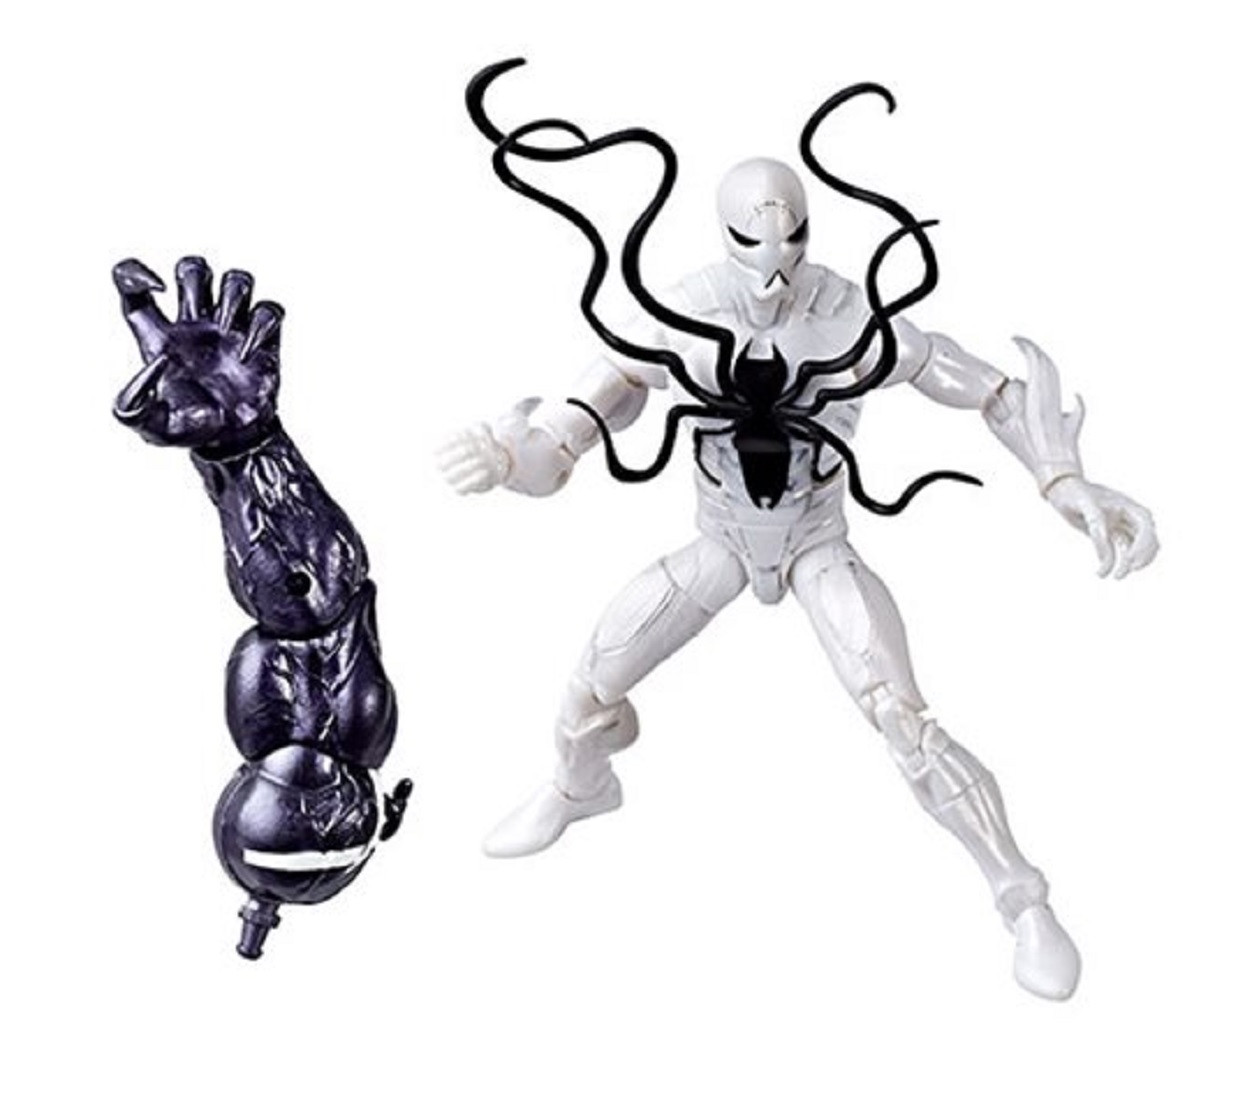 Action Figure Toy - Venom Marvel Legends - Poison Spider - 6 Inch - Wave 1